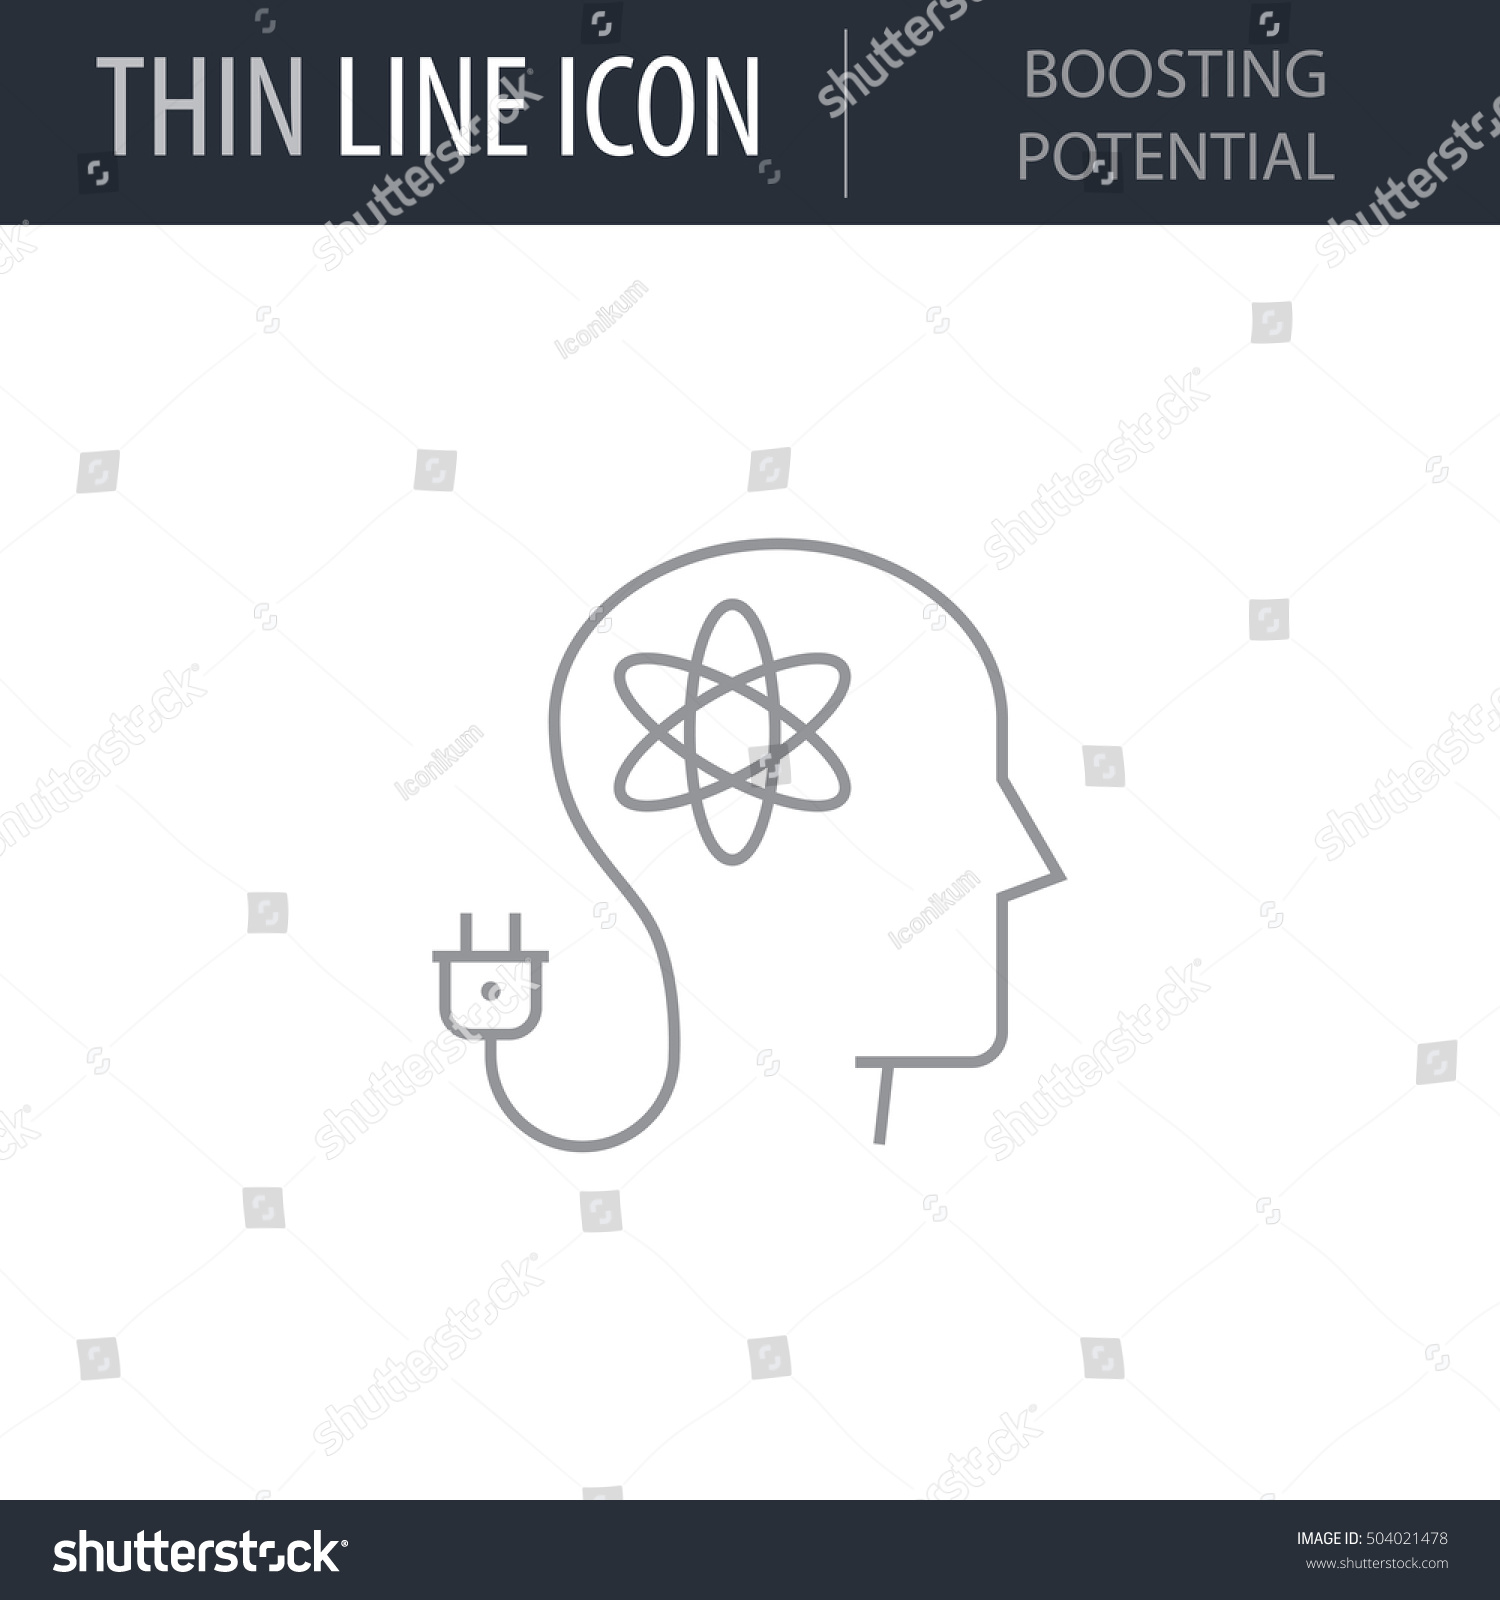 Symbol Boosting Potential Thin Line Icon Stock Vector Royalty Free